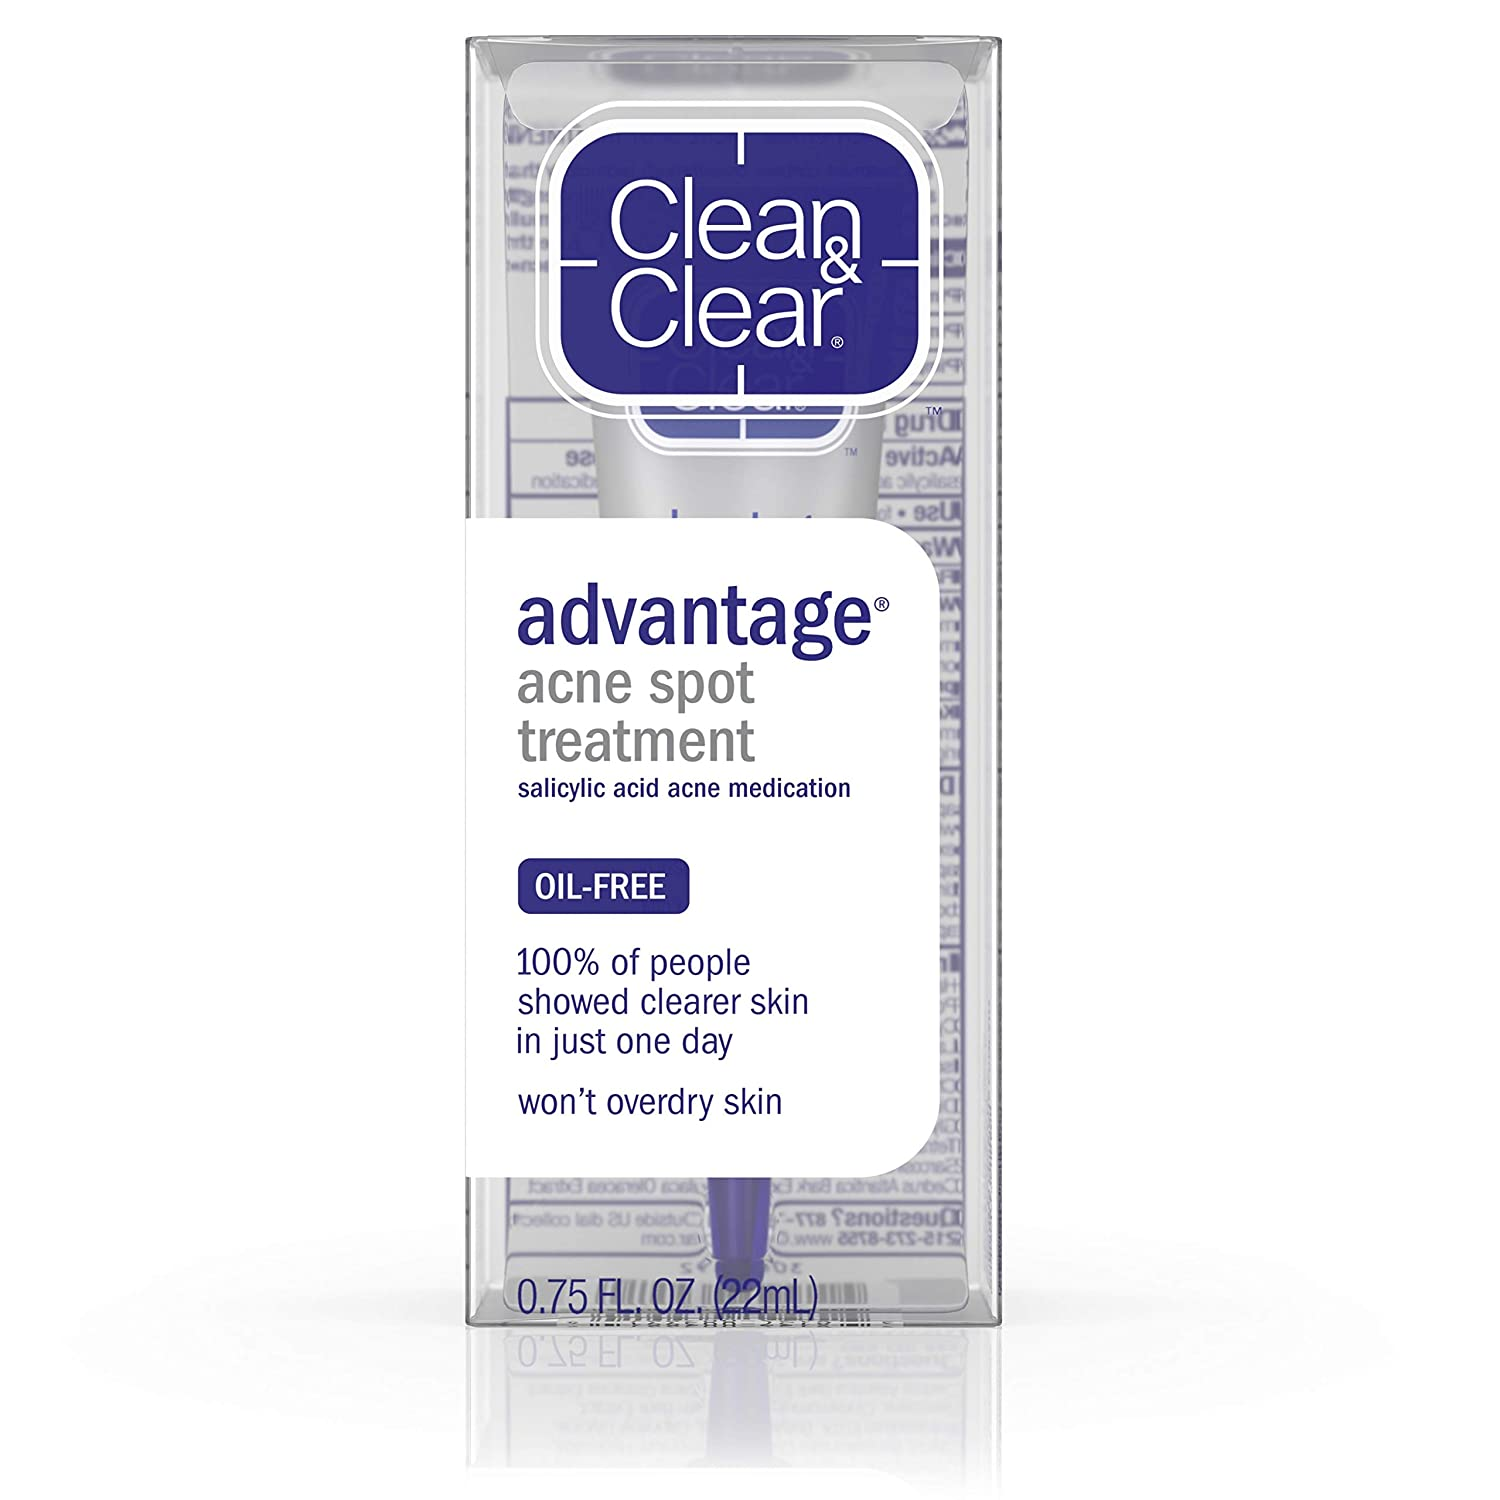 Clean & Clear Advantage Acne Spot Treatment, Oil Free Acne Treatment with Salicylic Acid, Witch Hazel, and BHA, Gel Pimple Cream for Adults and Teens, Witch Hazel & Salicylic Acid Medication,.75 oz